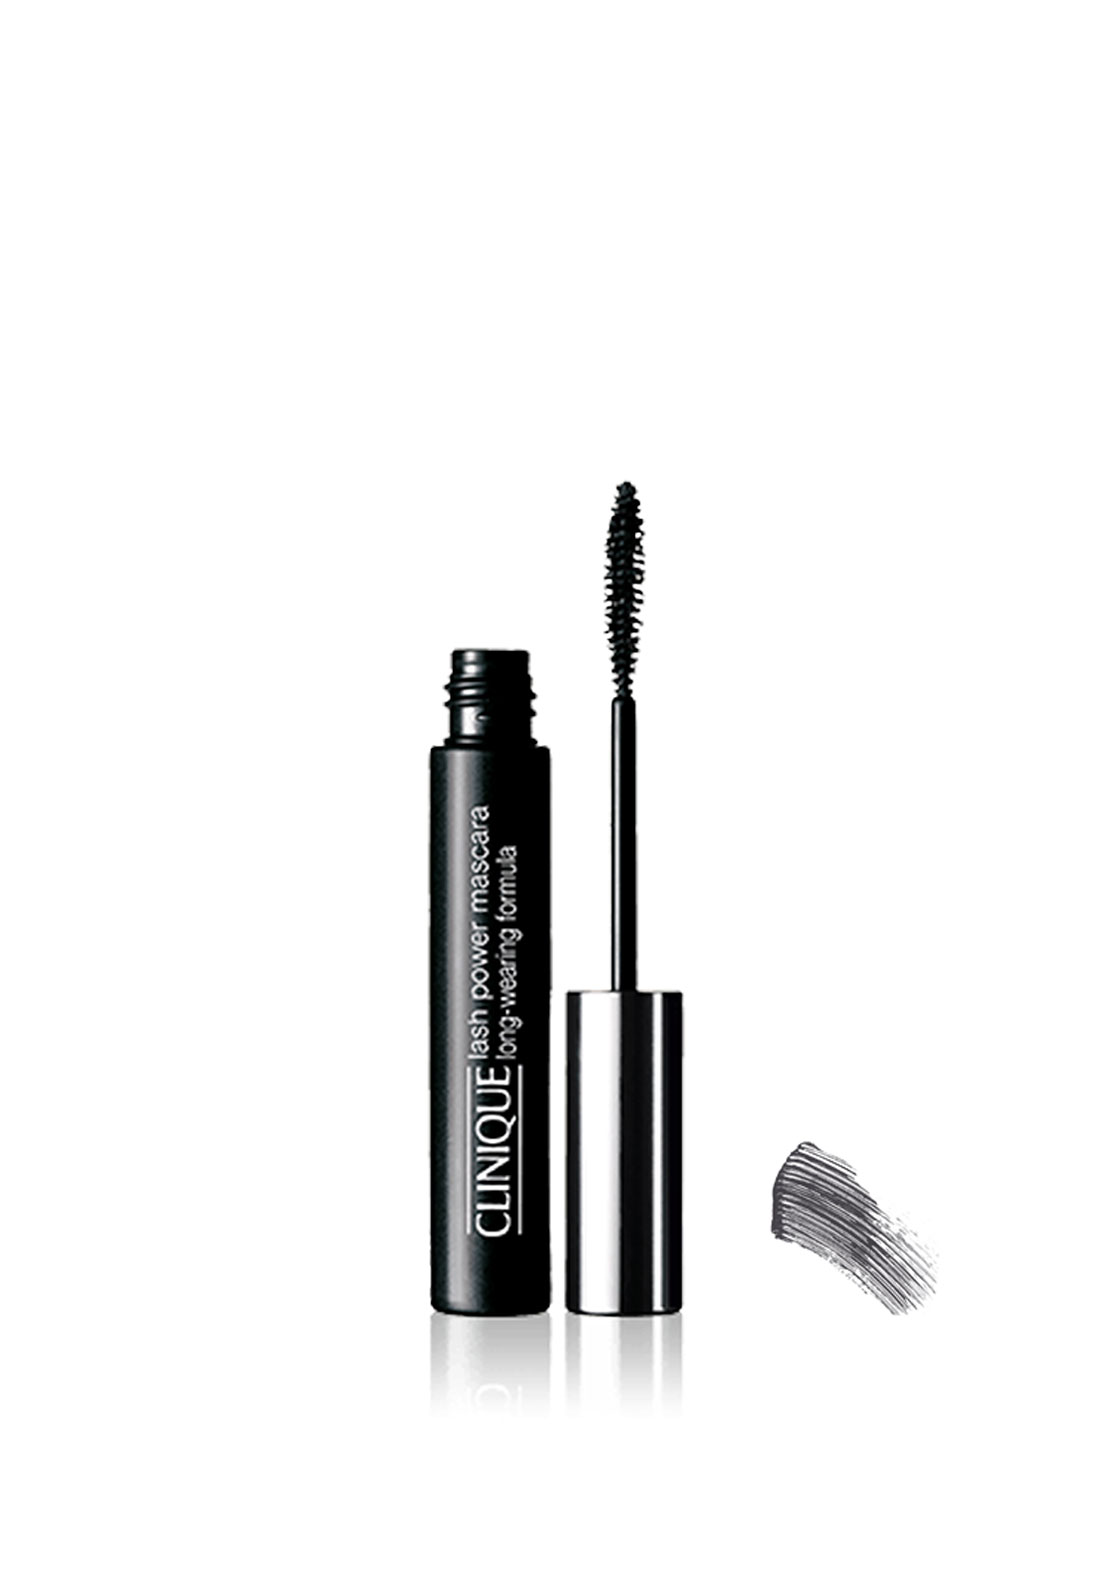 Clinique Lash Power Long Wearing Formula Mascara, Black